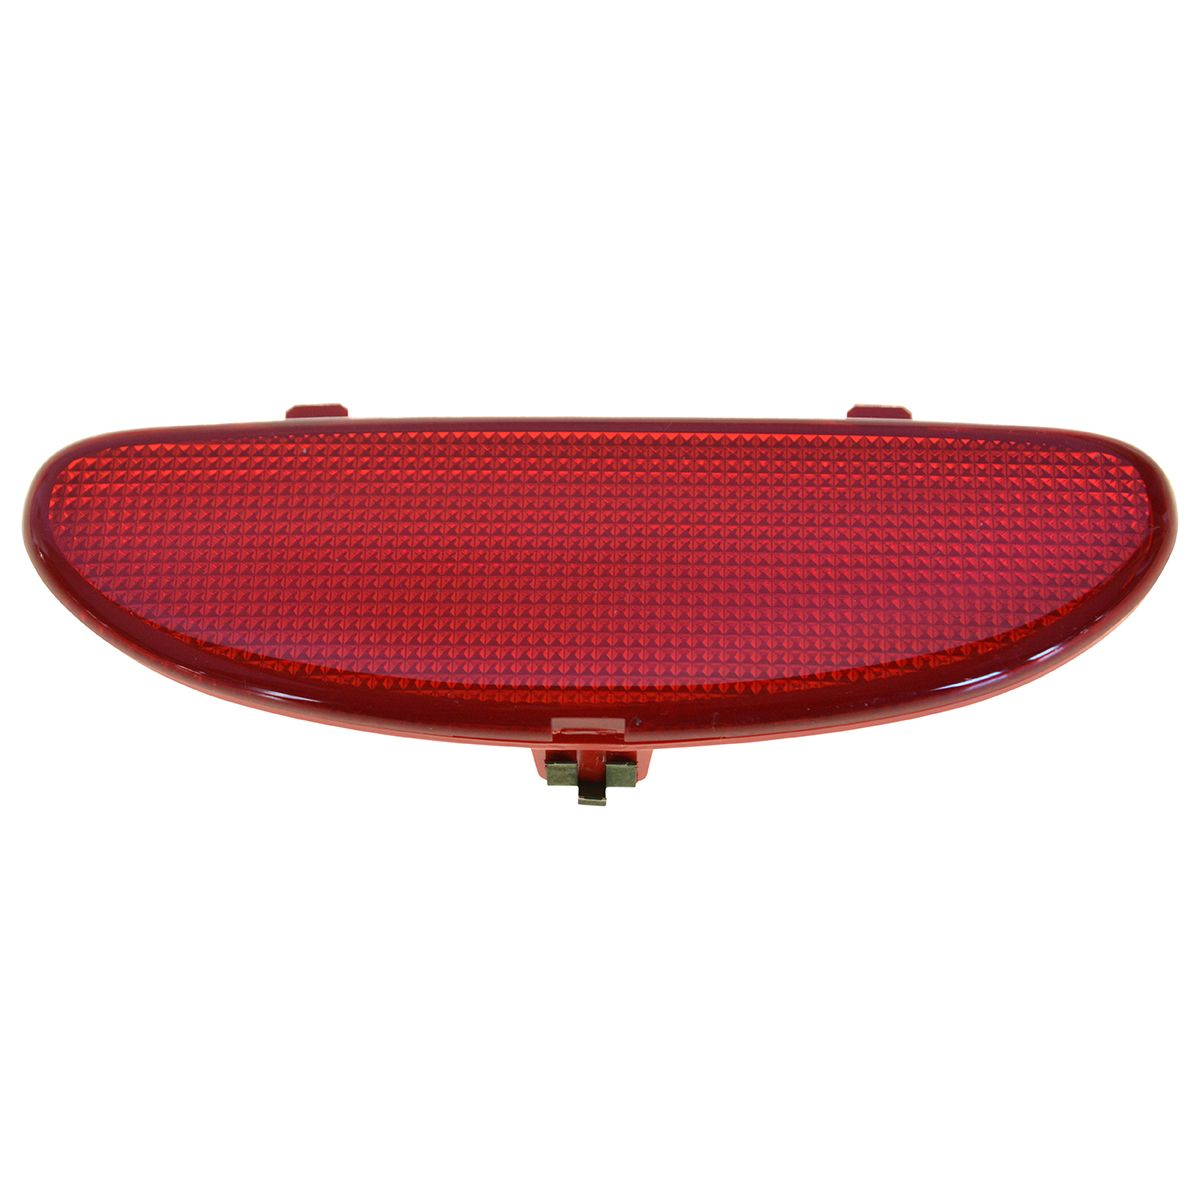 Oem Door Panel Courtesy Light Reflector Lens Red Interior For Chevy Corvette New Car Truck Interior Lights Moonnepal Com